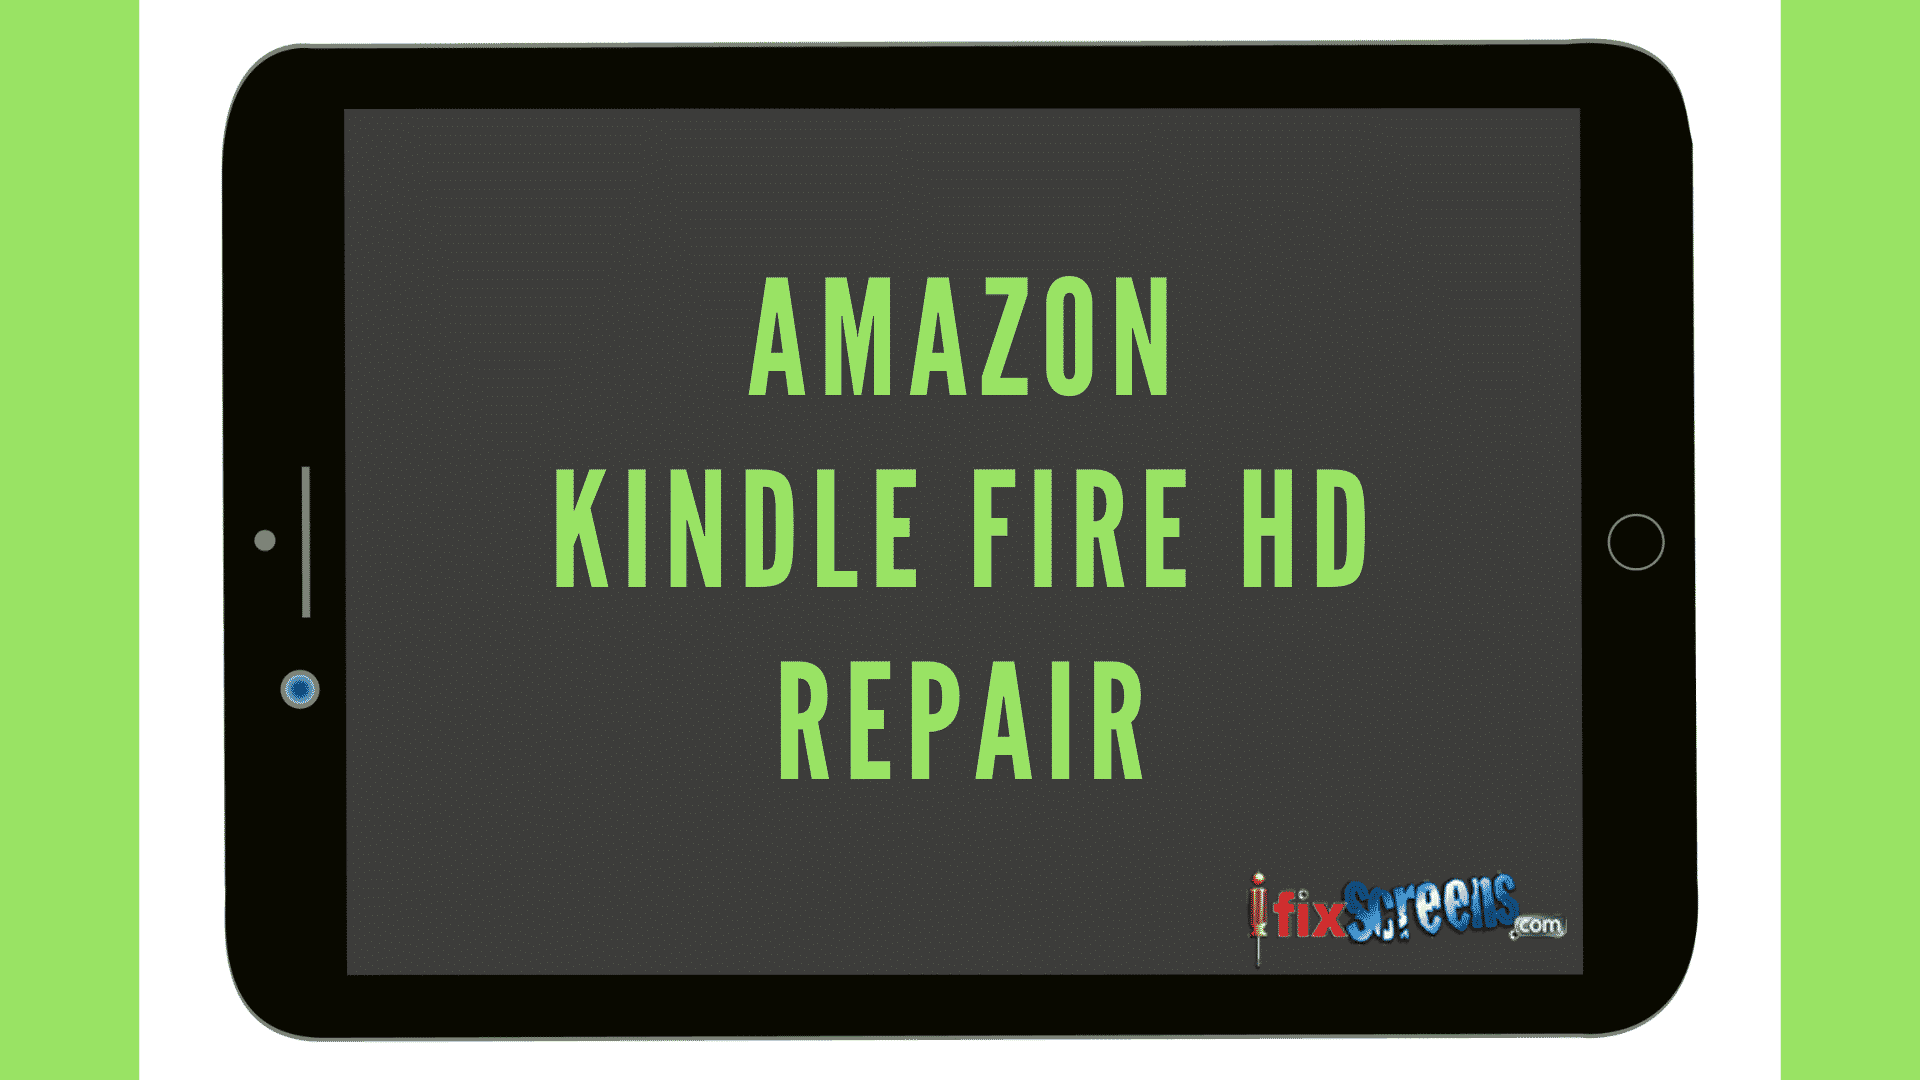 5 Common Issues With The Amazon Kindle Fire HD & How To Fix